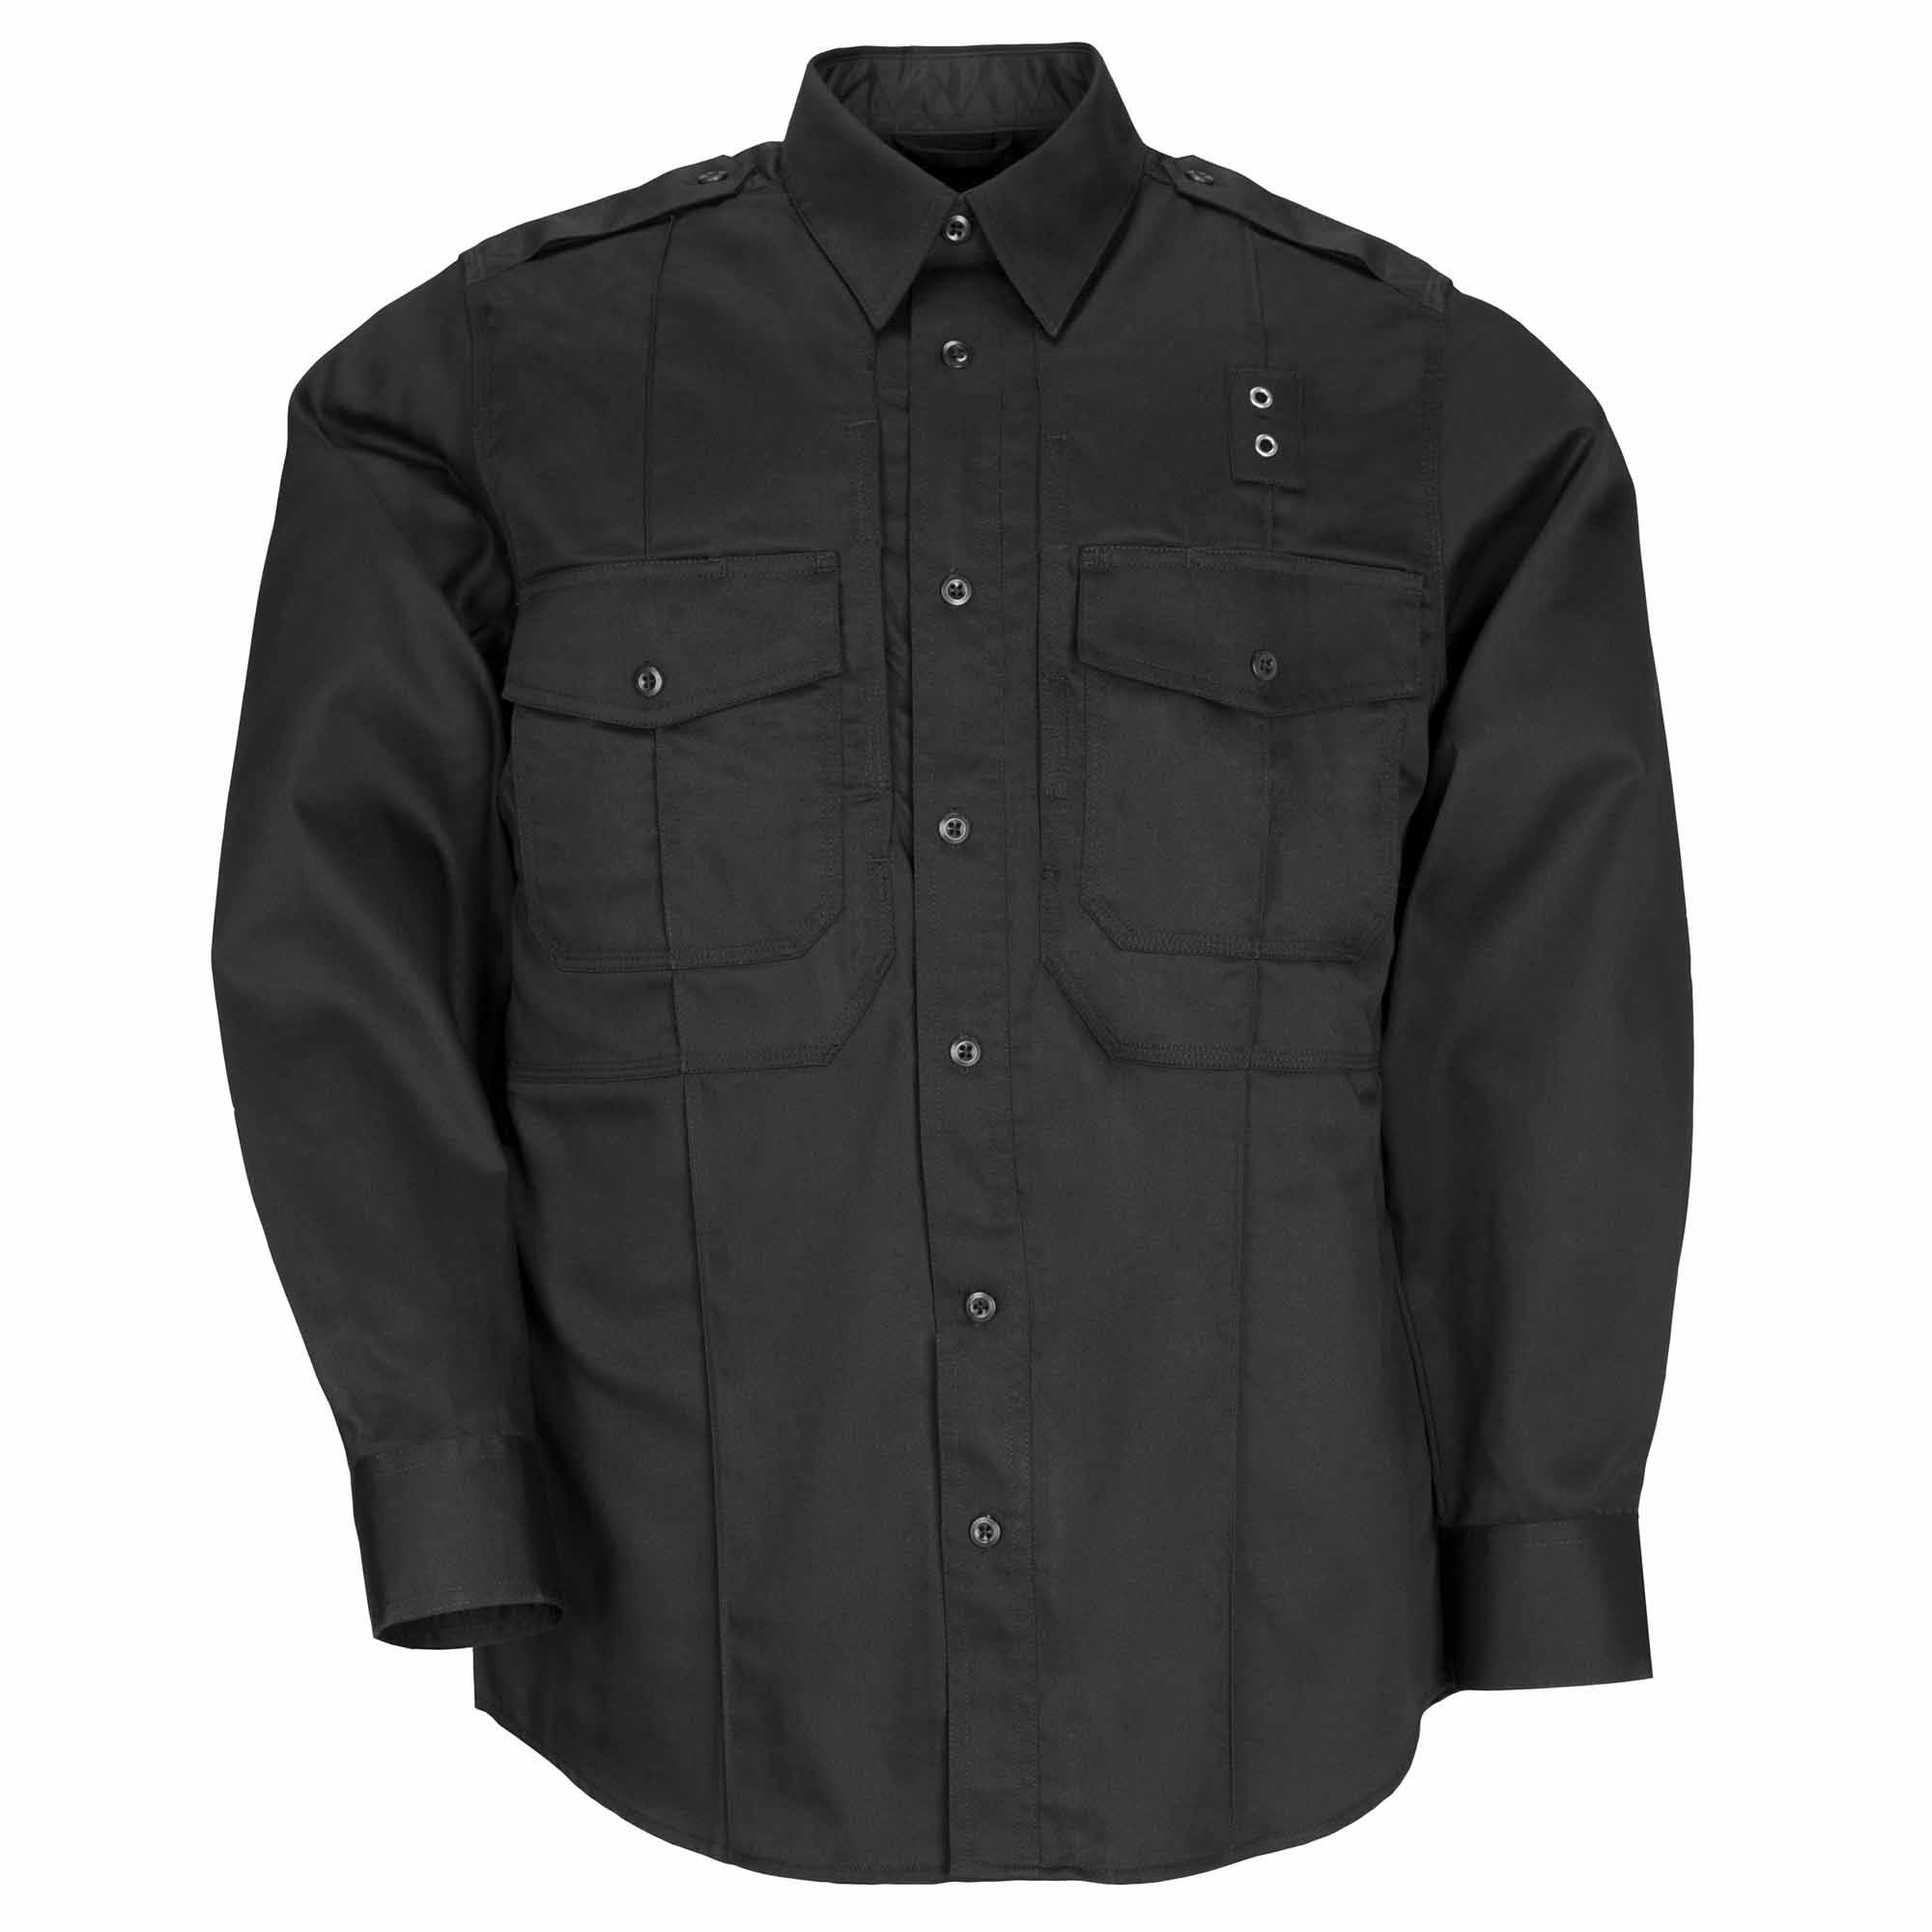 5.11 Tactical Men's PDU Long Sleeve Twill Class B Shirt